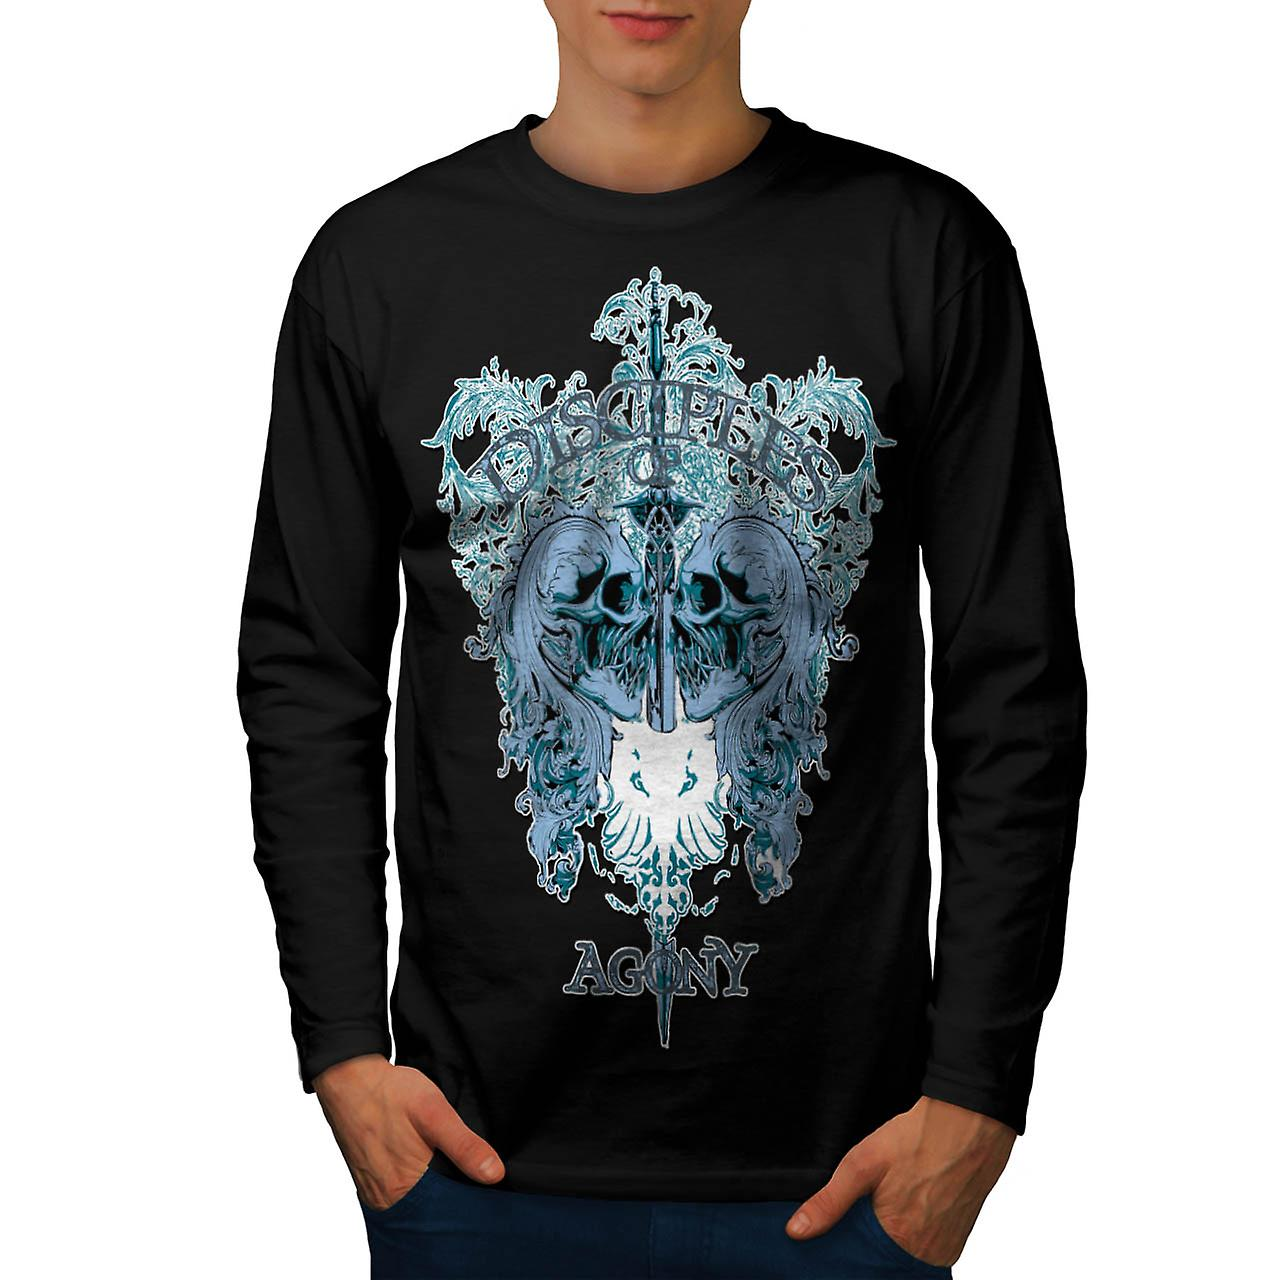 Disciples Of Agony Follow Lead Men Black Long Sleeve T-shirt | Wellcoda